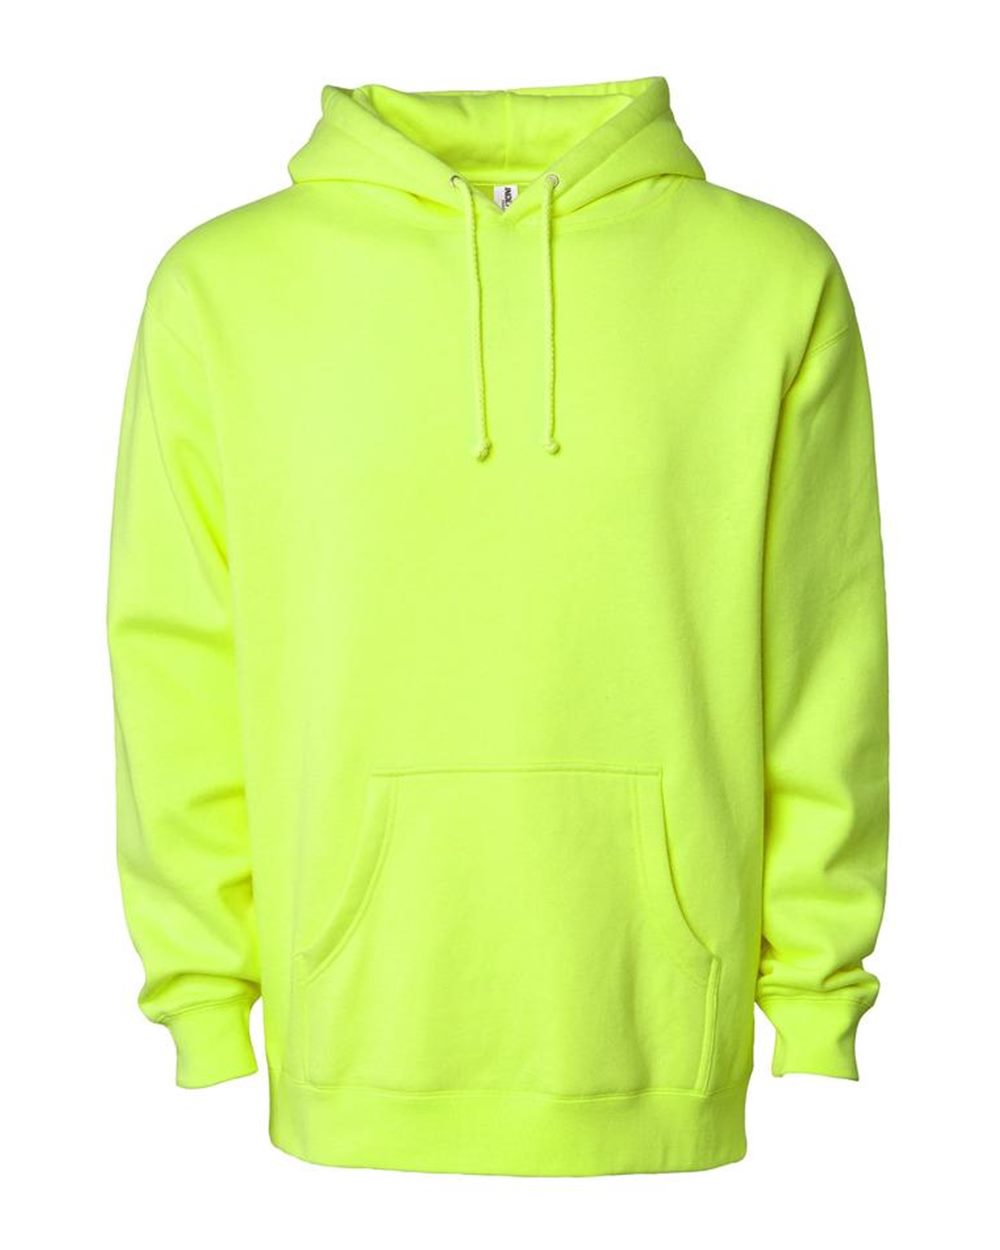 Independent-Trading-Co-Mens-Hooded-Pullover-Sweatshirt-IND4000-up-to-3XL miniature 72